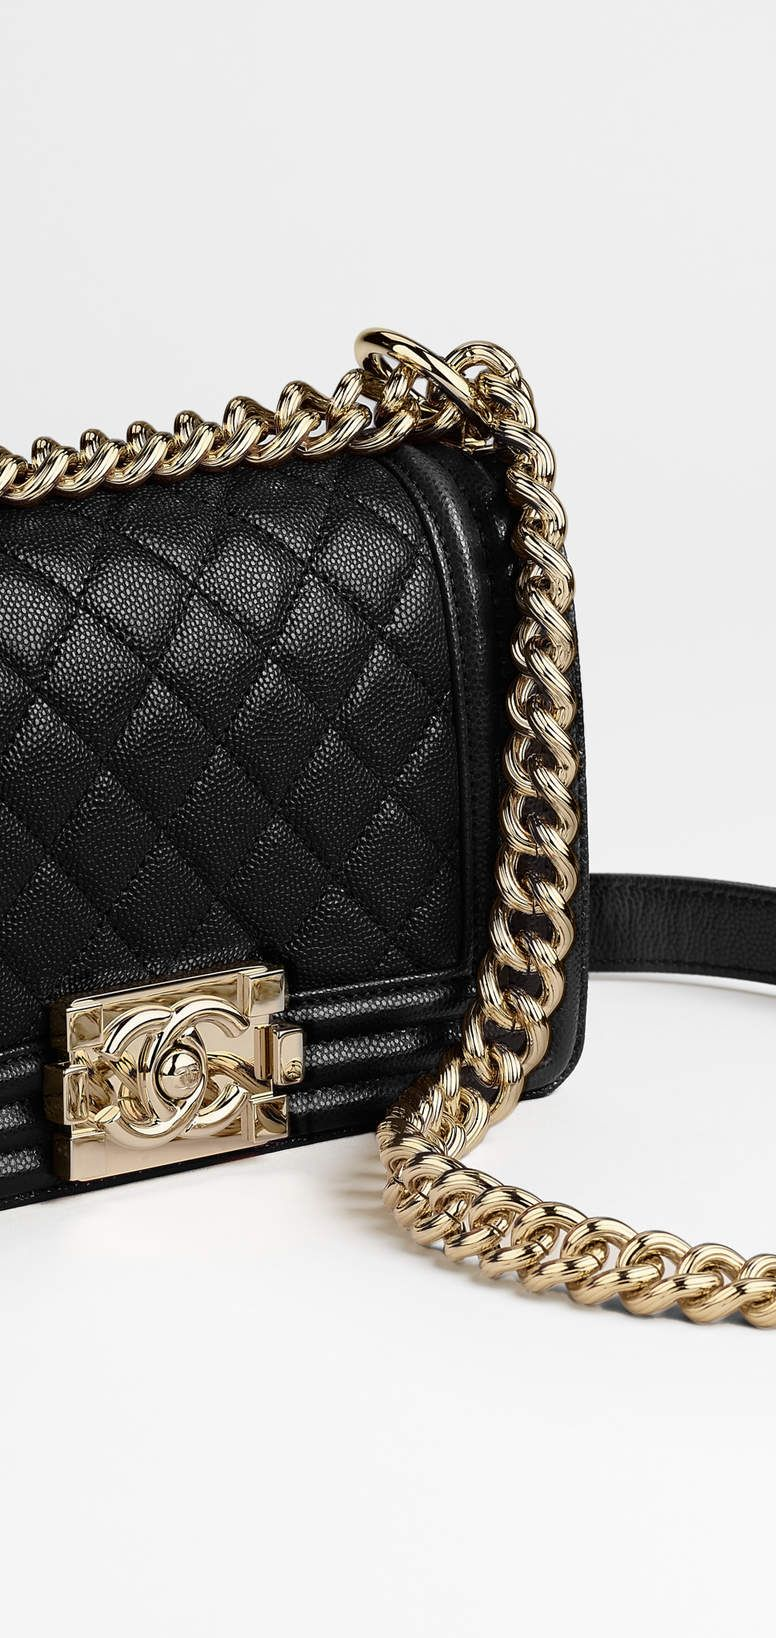 The Latest Handbags Collections On Chanel Official